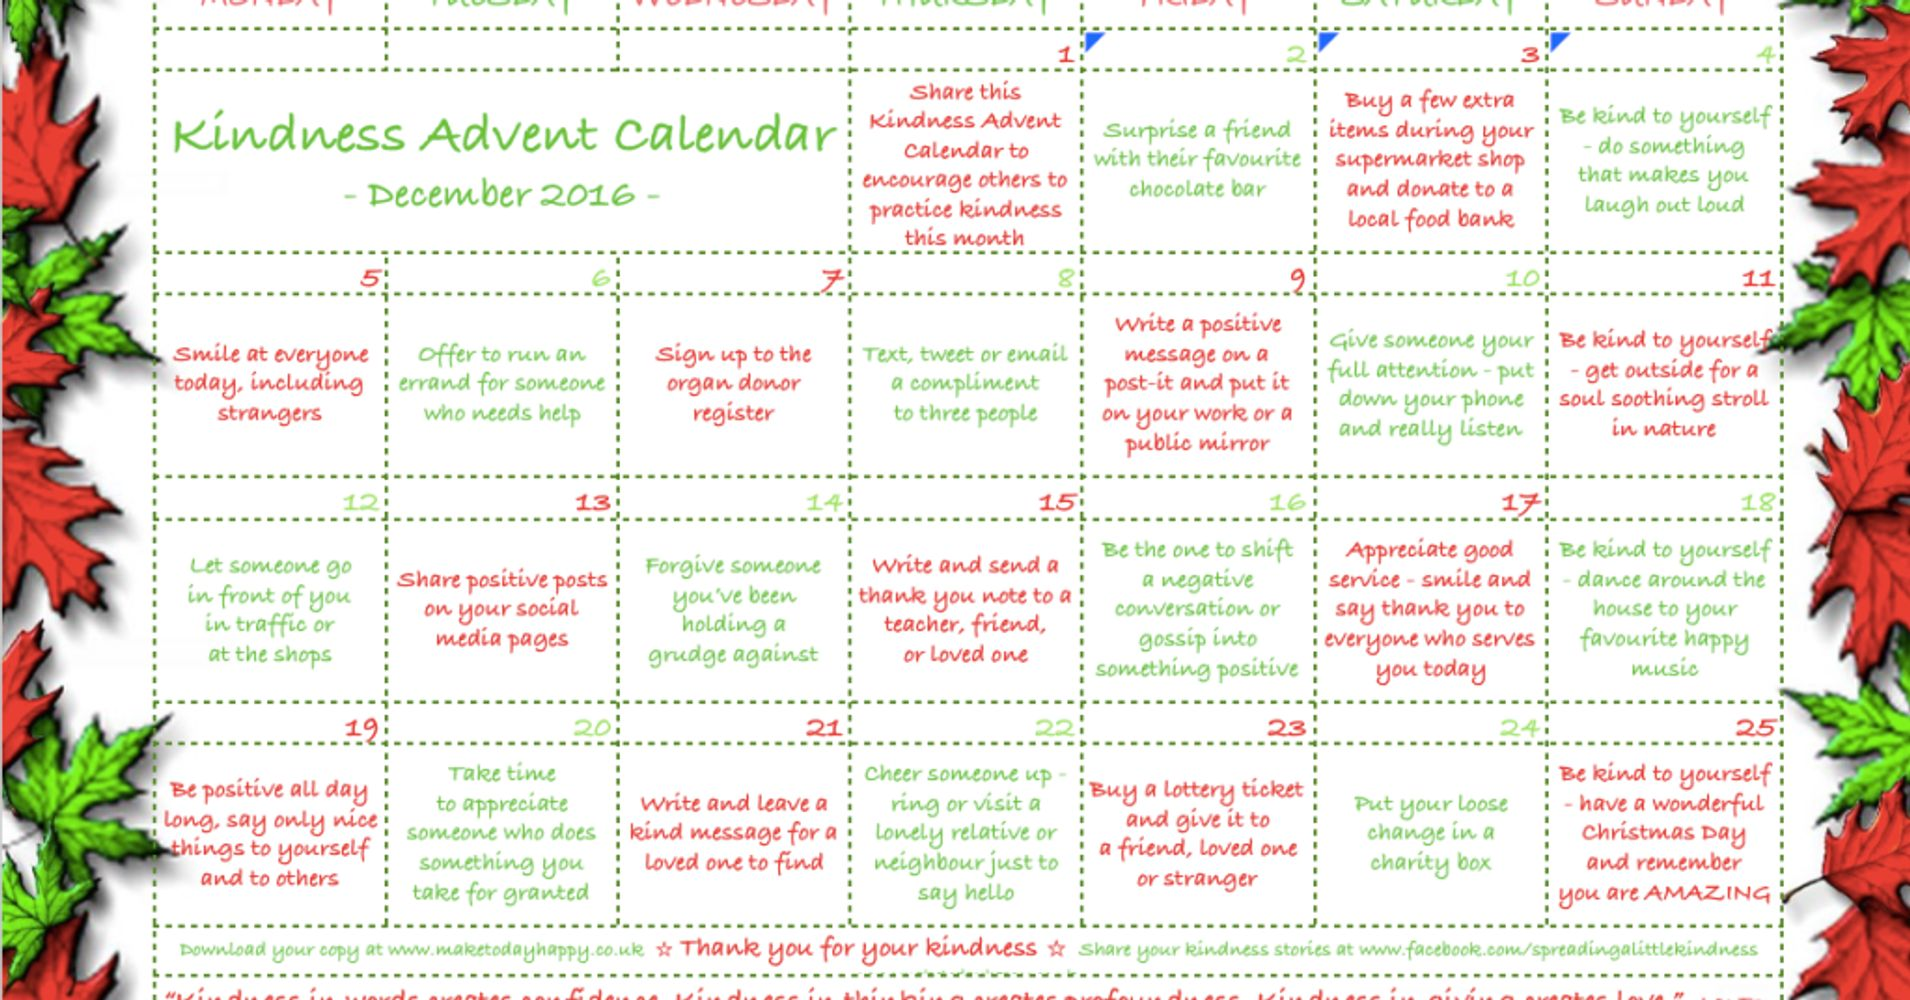 The kindness advent calendar huffpost solutioingenieria